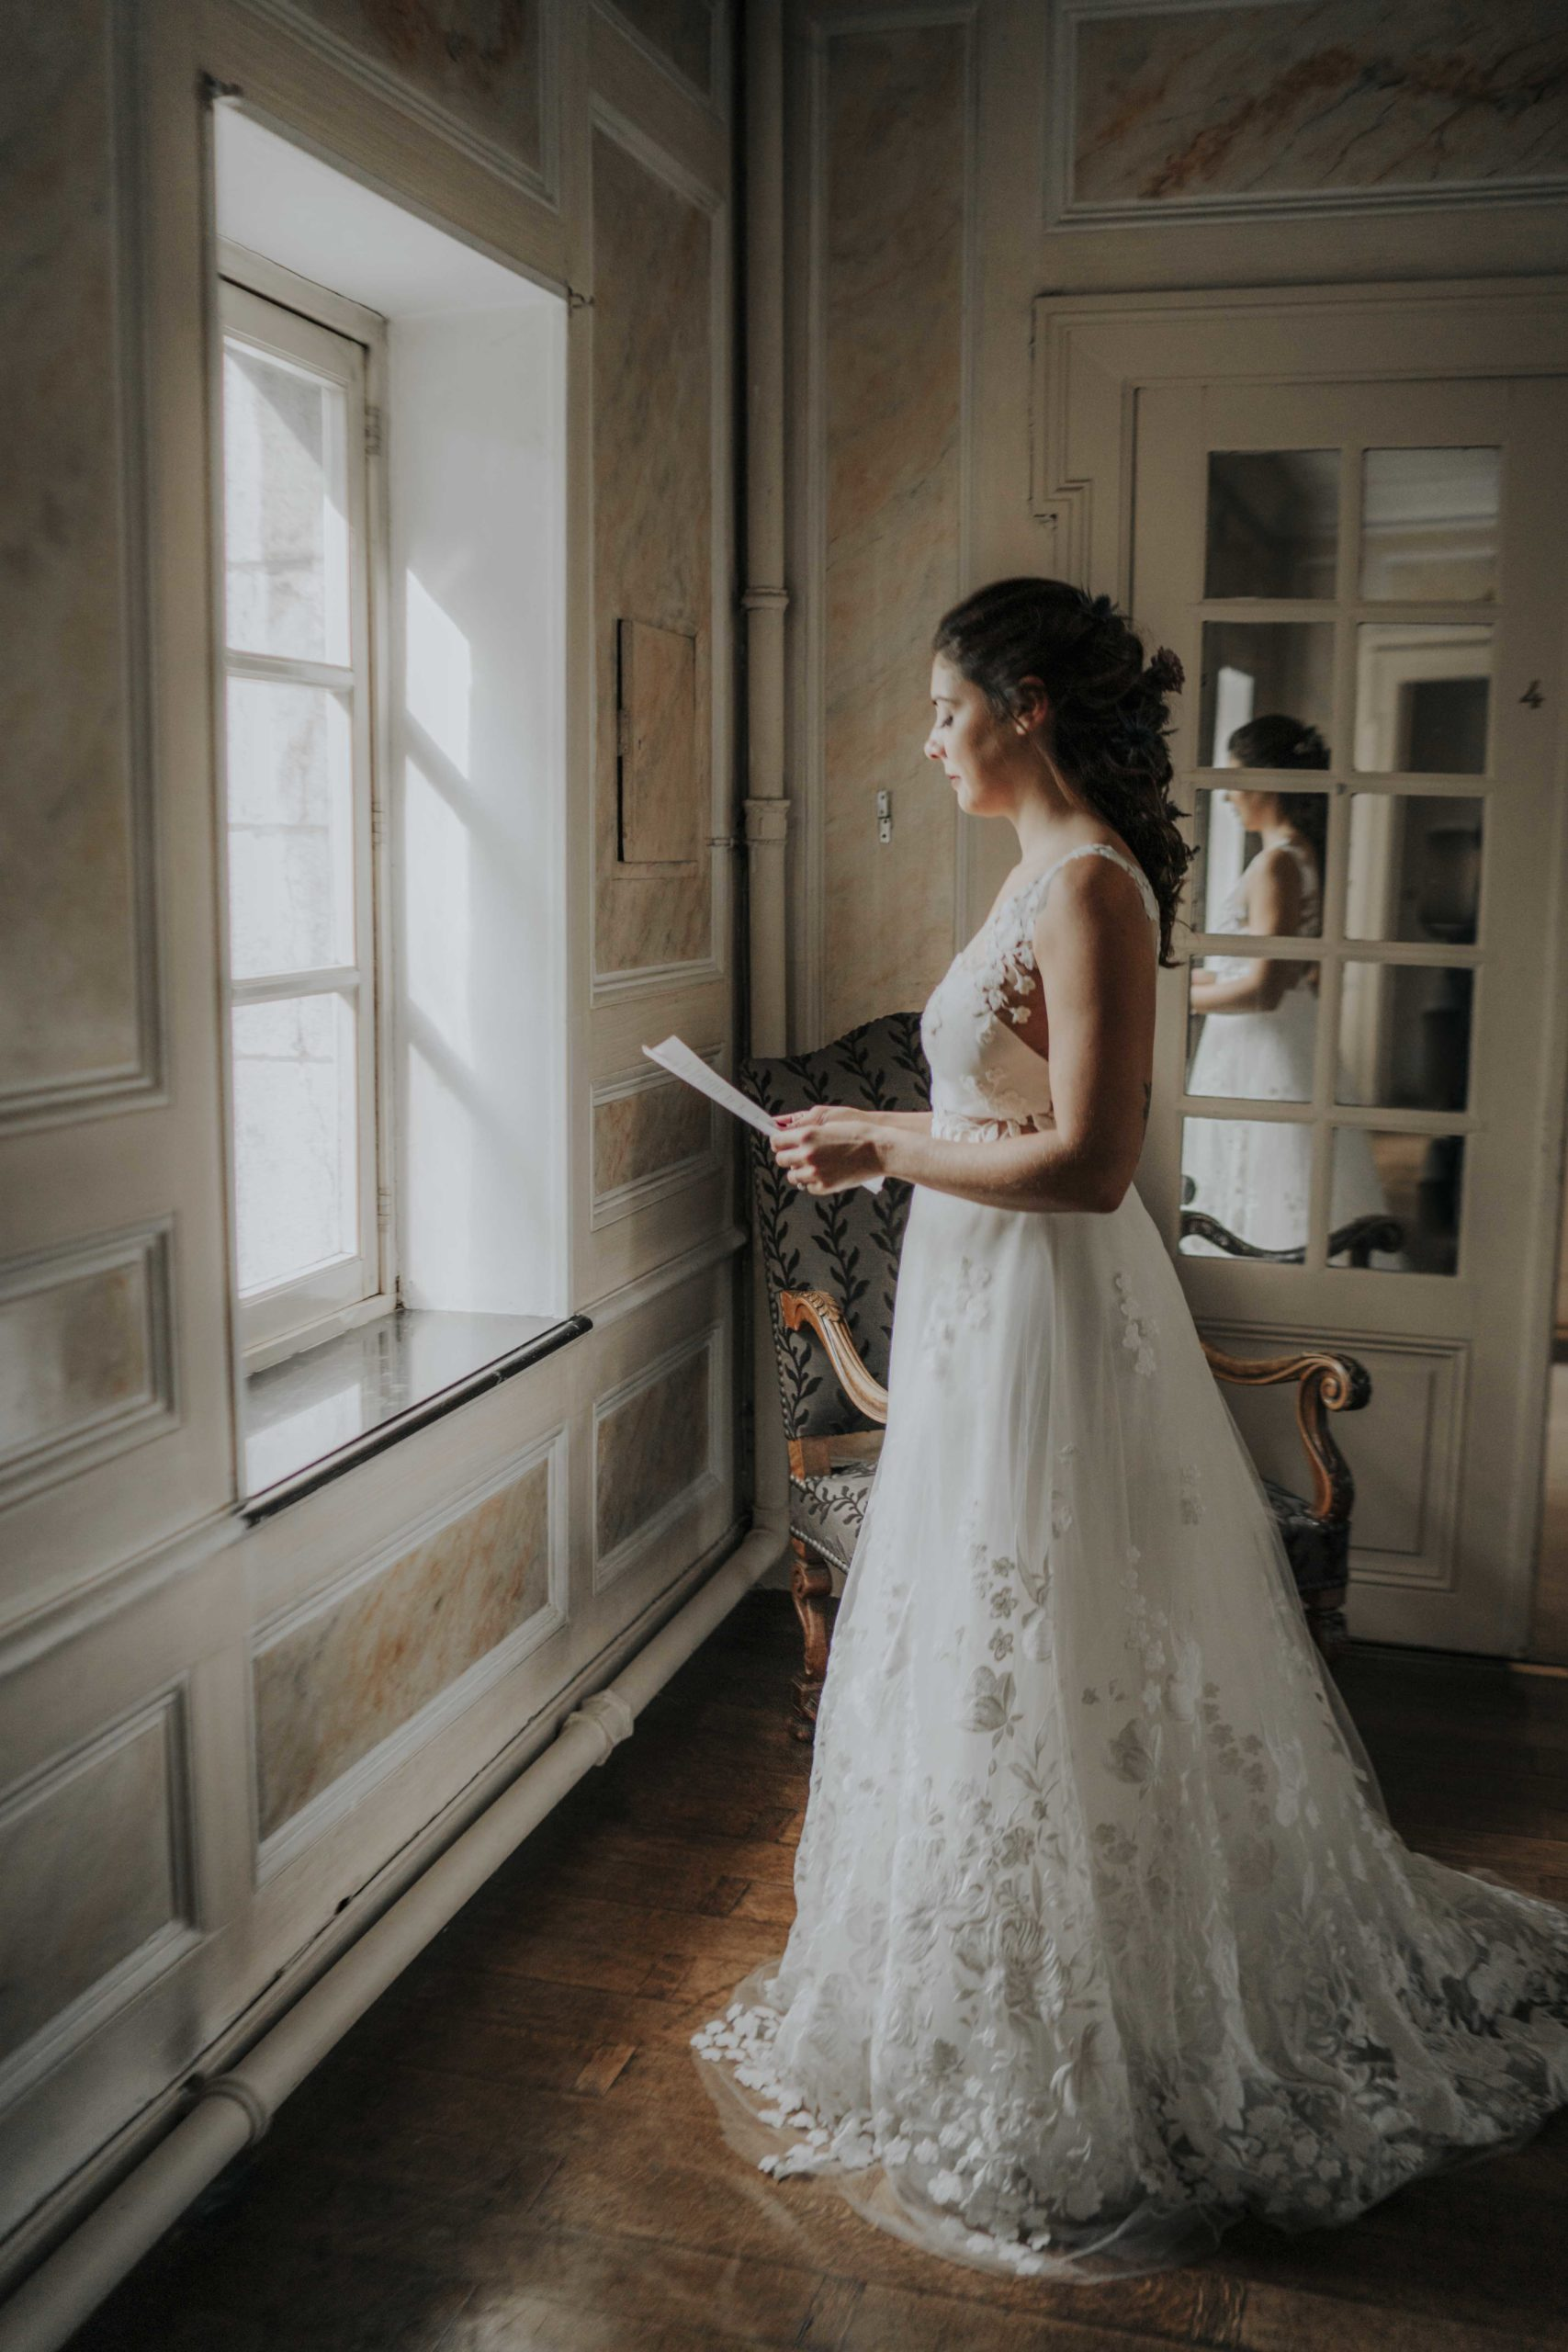 FOREVER_FANNY_MYARD_PHOTOGRAPHY_LN_MARIAGE-121